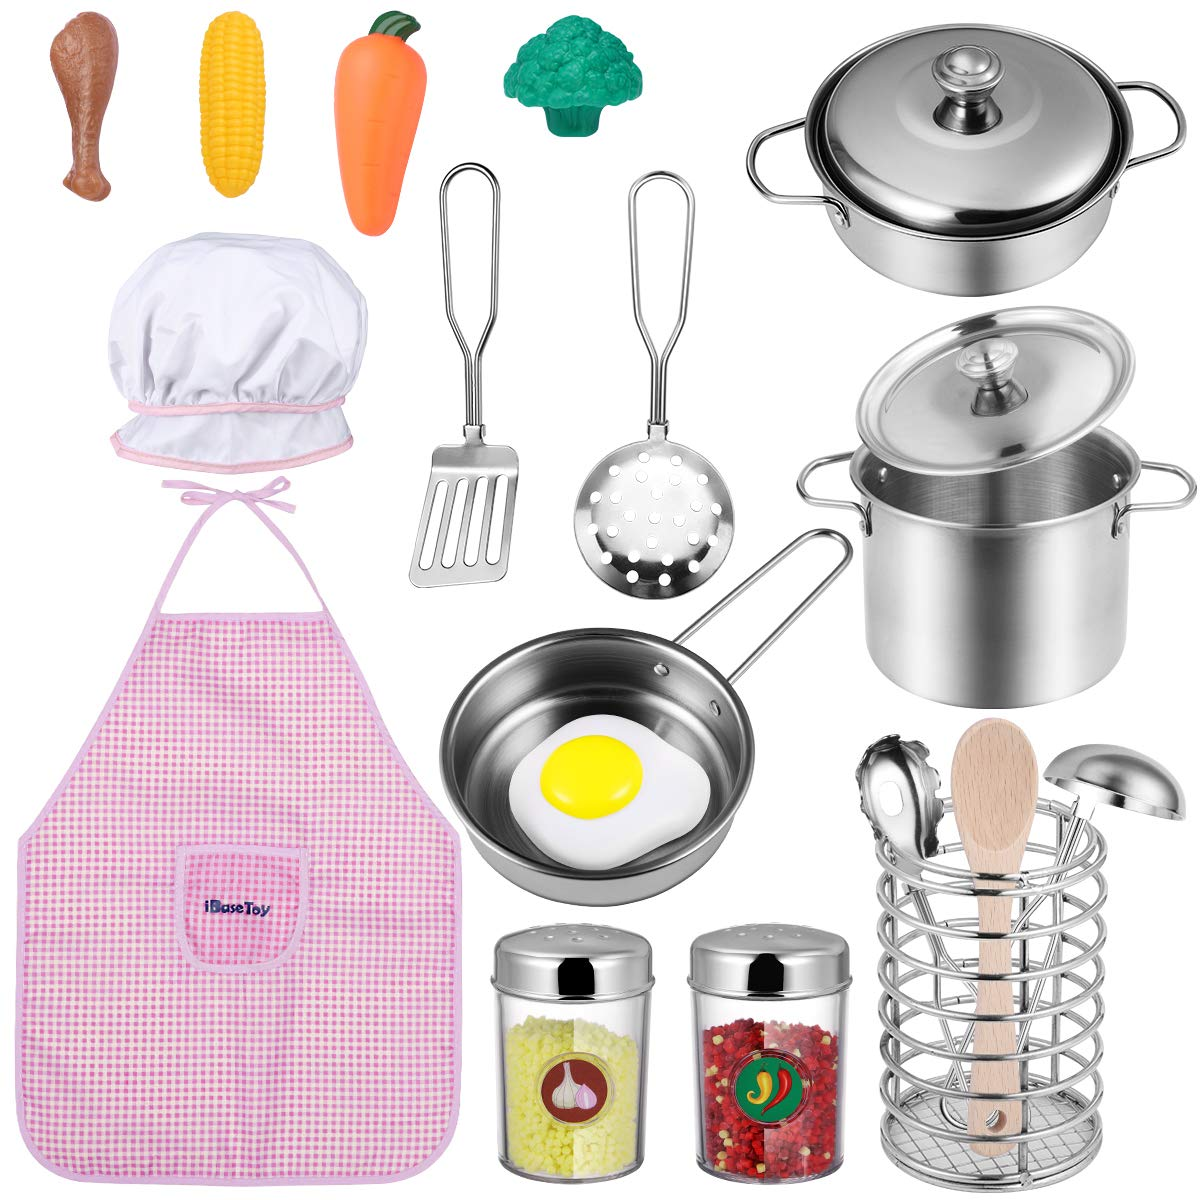 iBaseToy Kids Kitchen Pretend Play Accessories Toys - Cooking Toys Cookware Playset with Stainless Steel Pots and Pans Set, Cooking Utensils, Apron & Chef Hat, Play Food for Girls Boys Toddlers